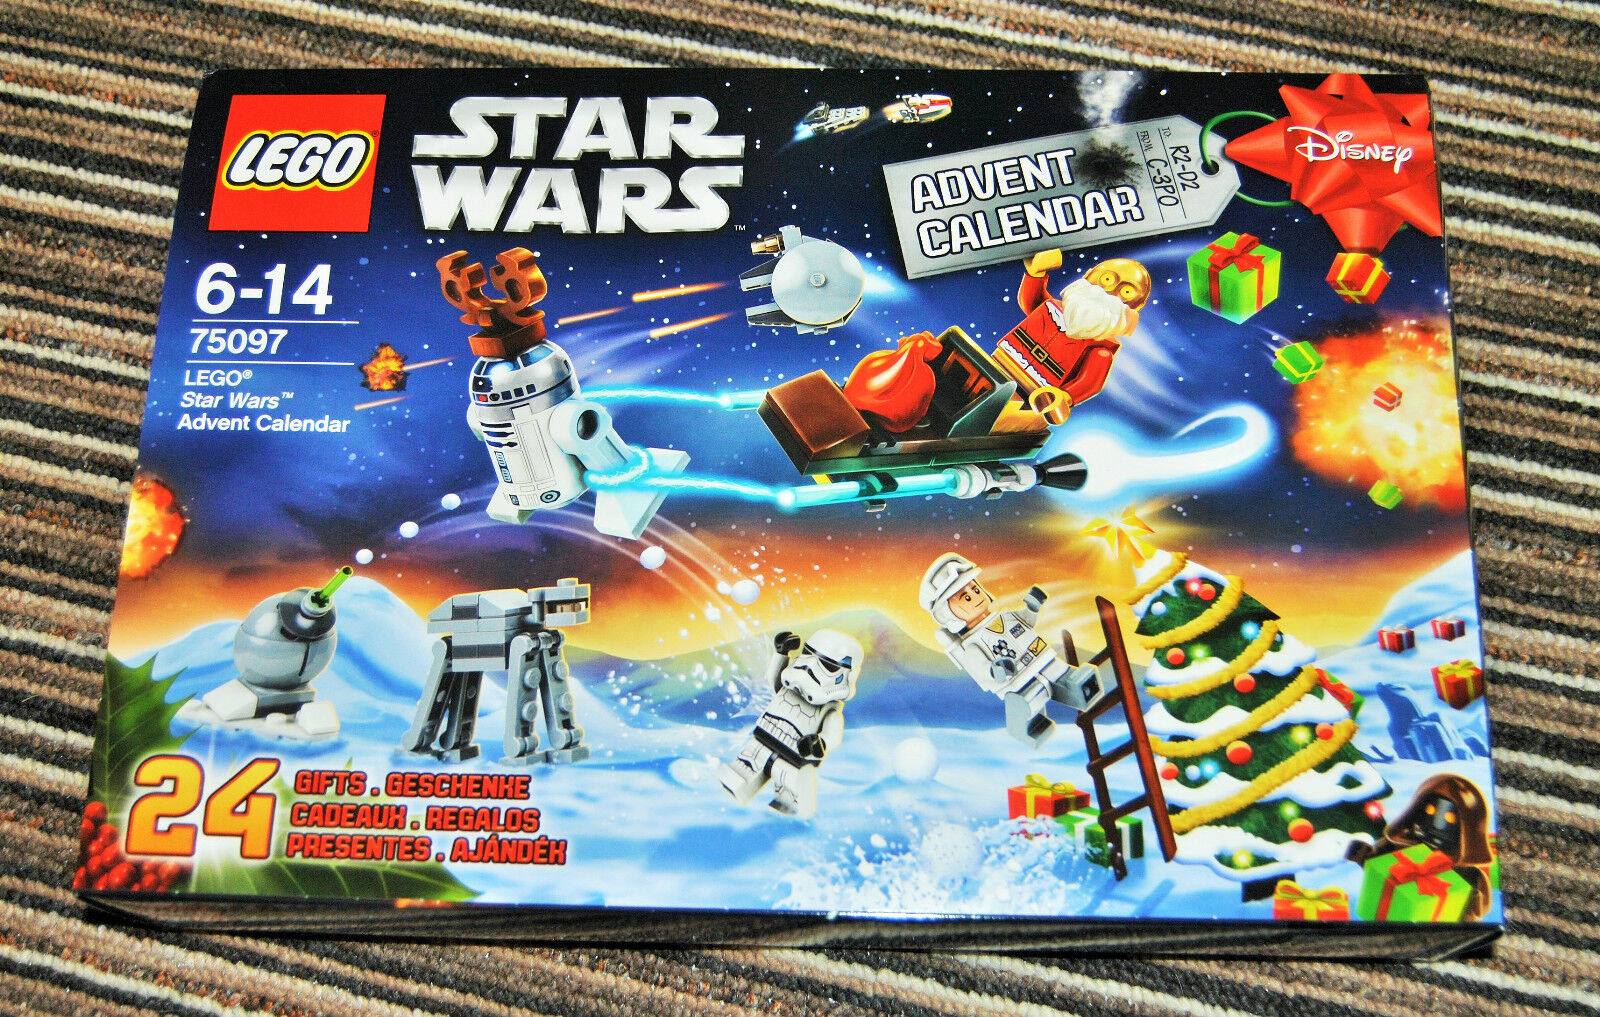 Lego Star Wars 2015 Advent Calendar. New and Sealed. 75097. Free Postage